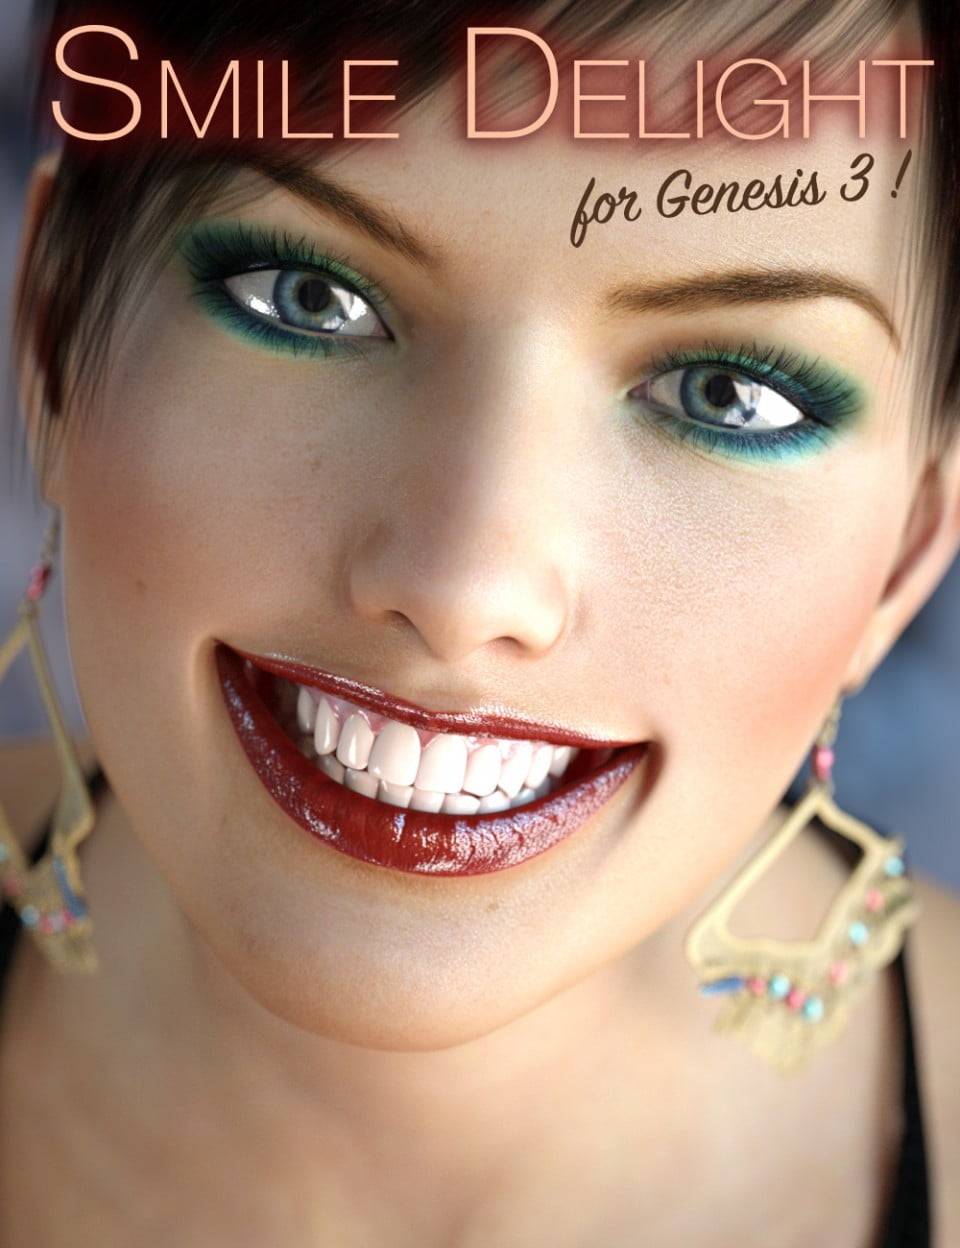 Smile Delight for Genesis 3 Female(s)